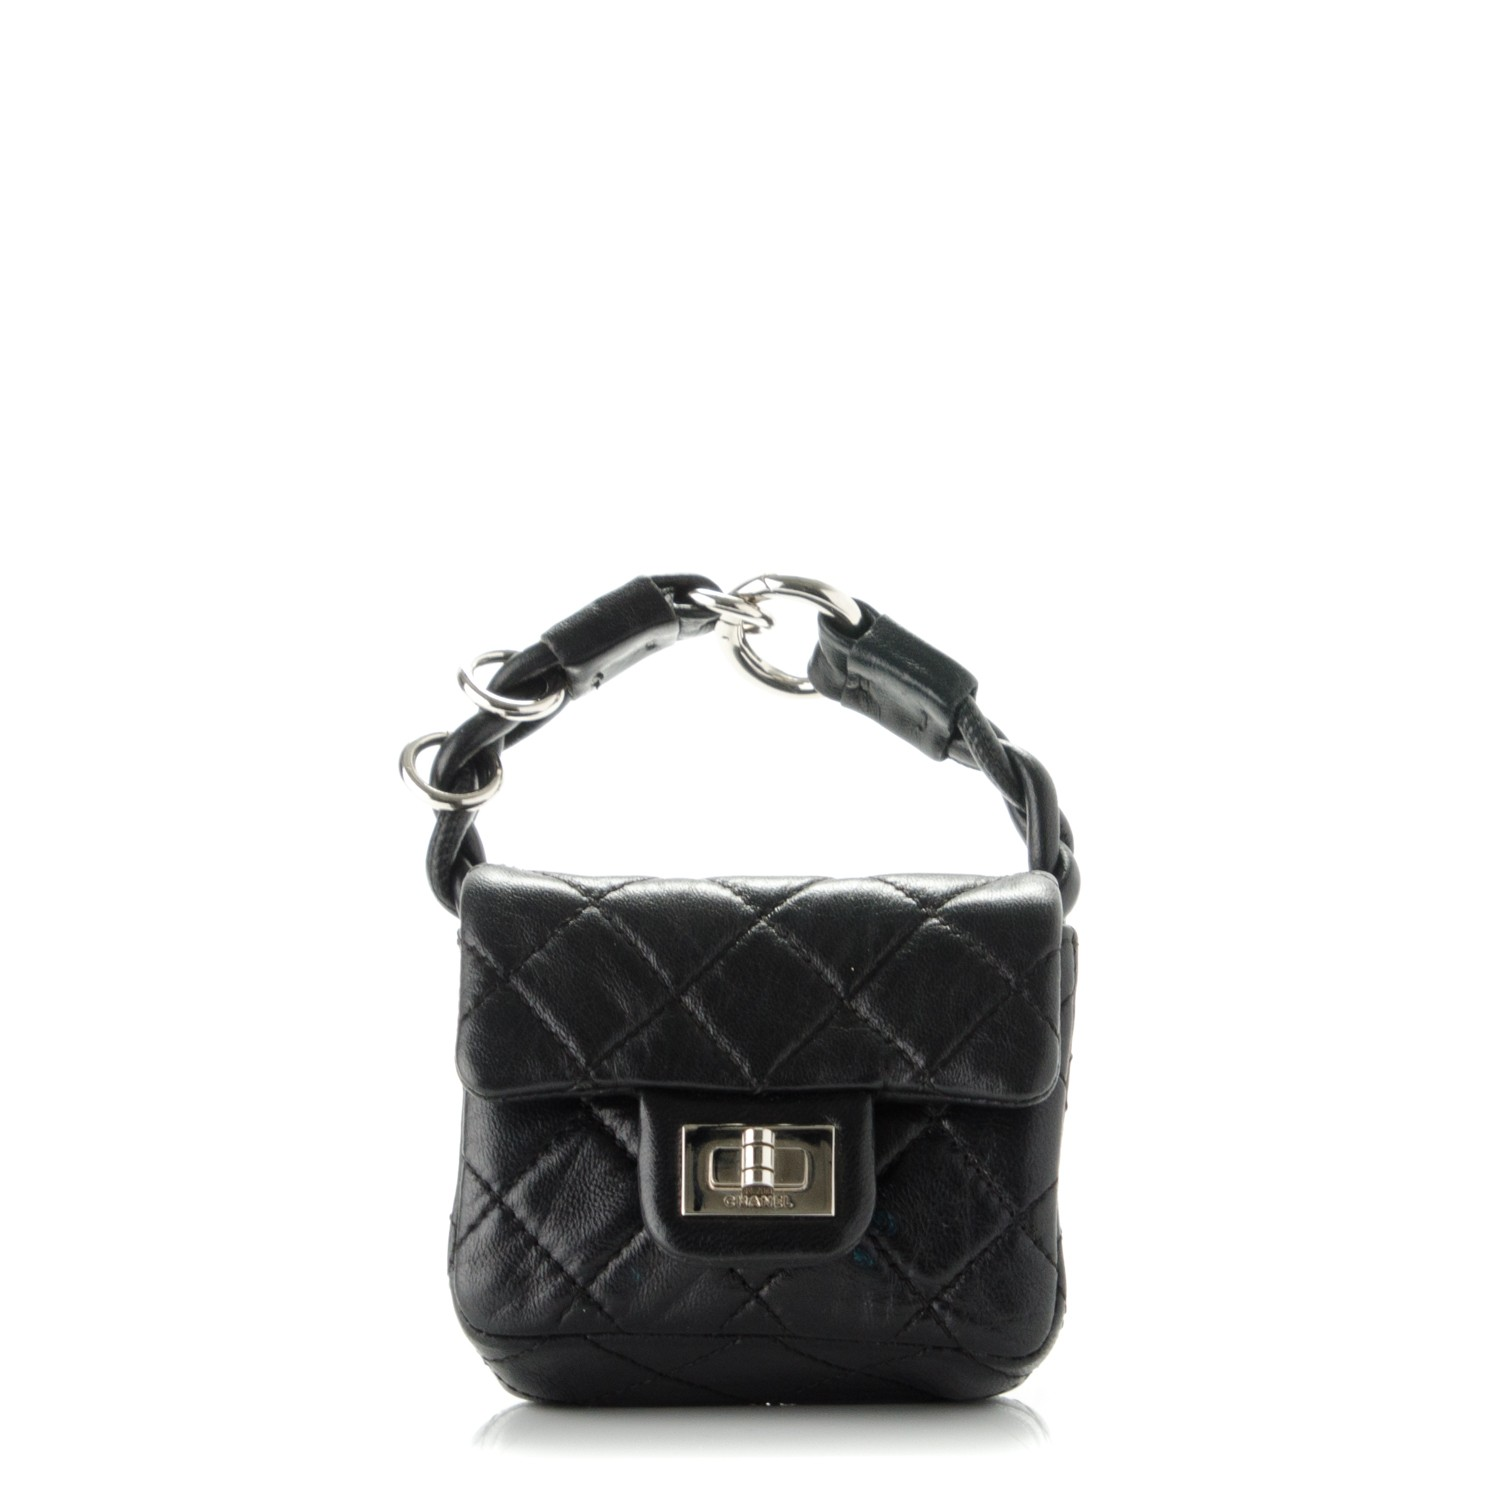 c44e73c56a4bd1 CHANEL Calfskin Quilted 2.55 Ankle Wrist Bag Black 177245